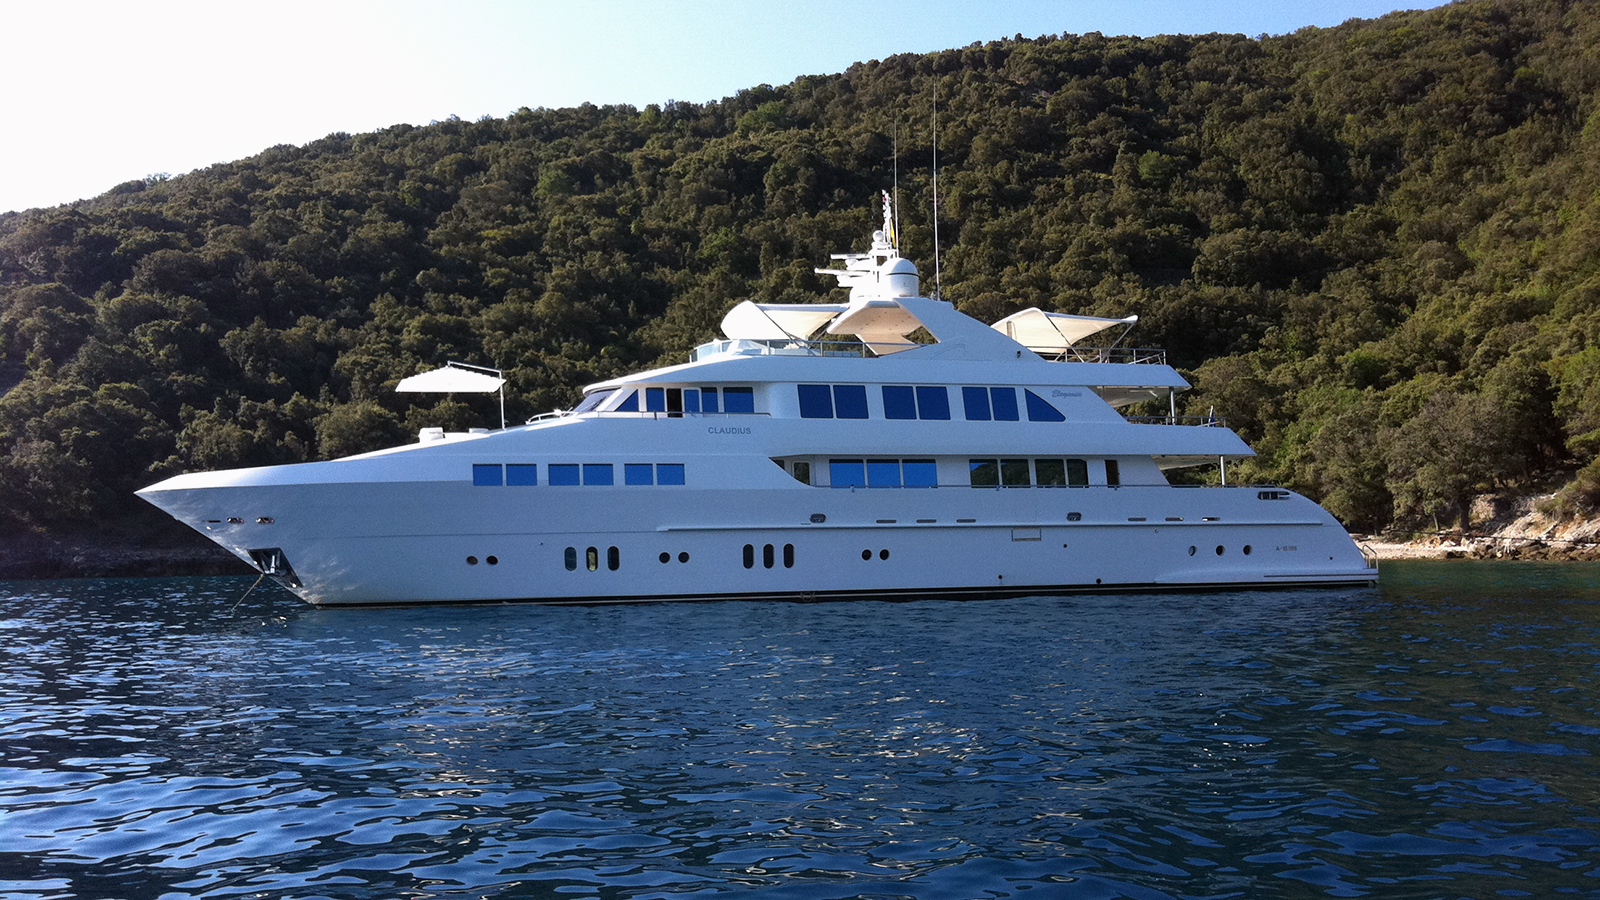 Claudius - Horizon yacht sold